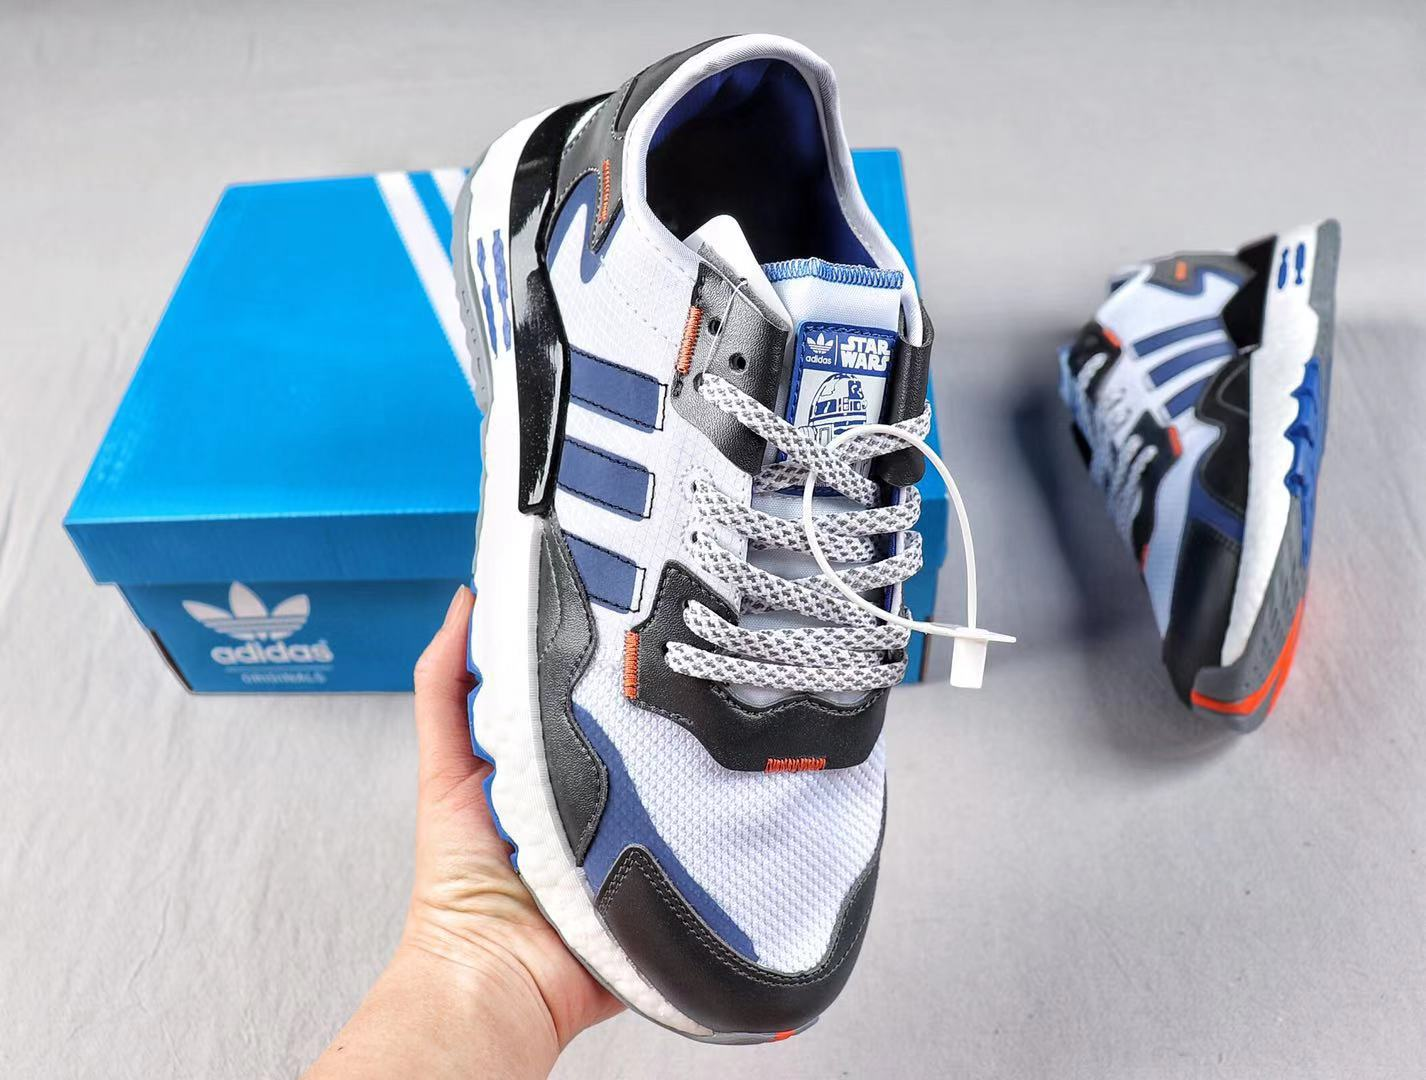 Adidas Nite Jogger 2019 Boost White/Black-Blue Running Shoes Hot Sale